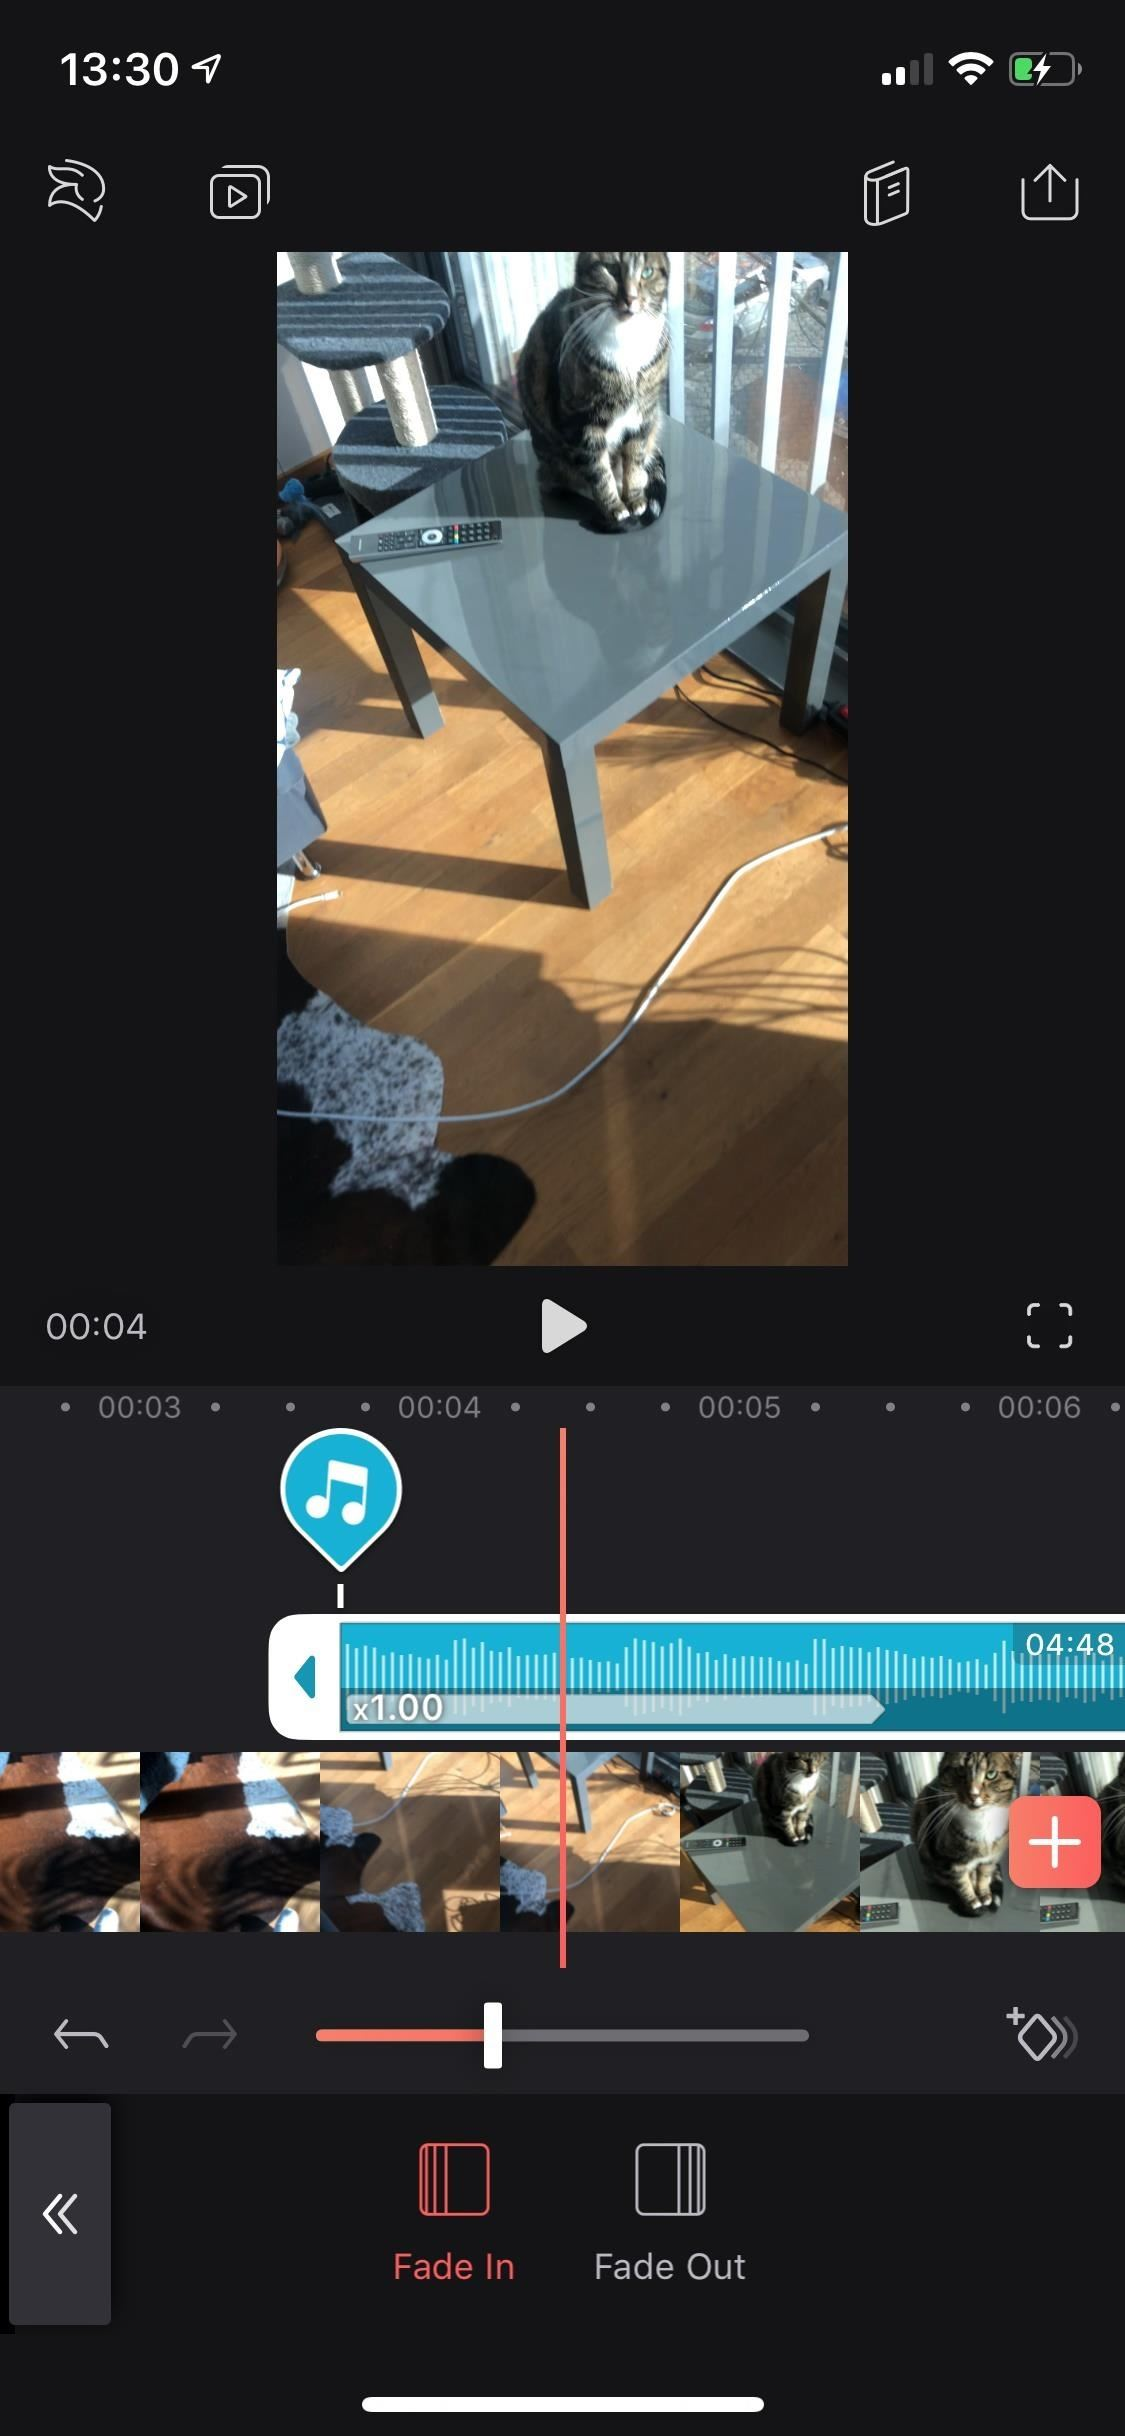 All you need to know about adding and editing audio for videos in Enlight Video Leap for iPhone